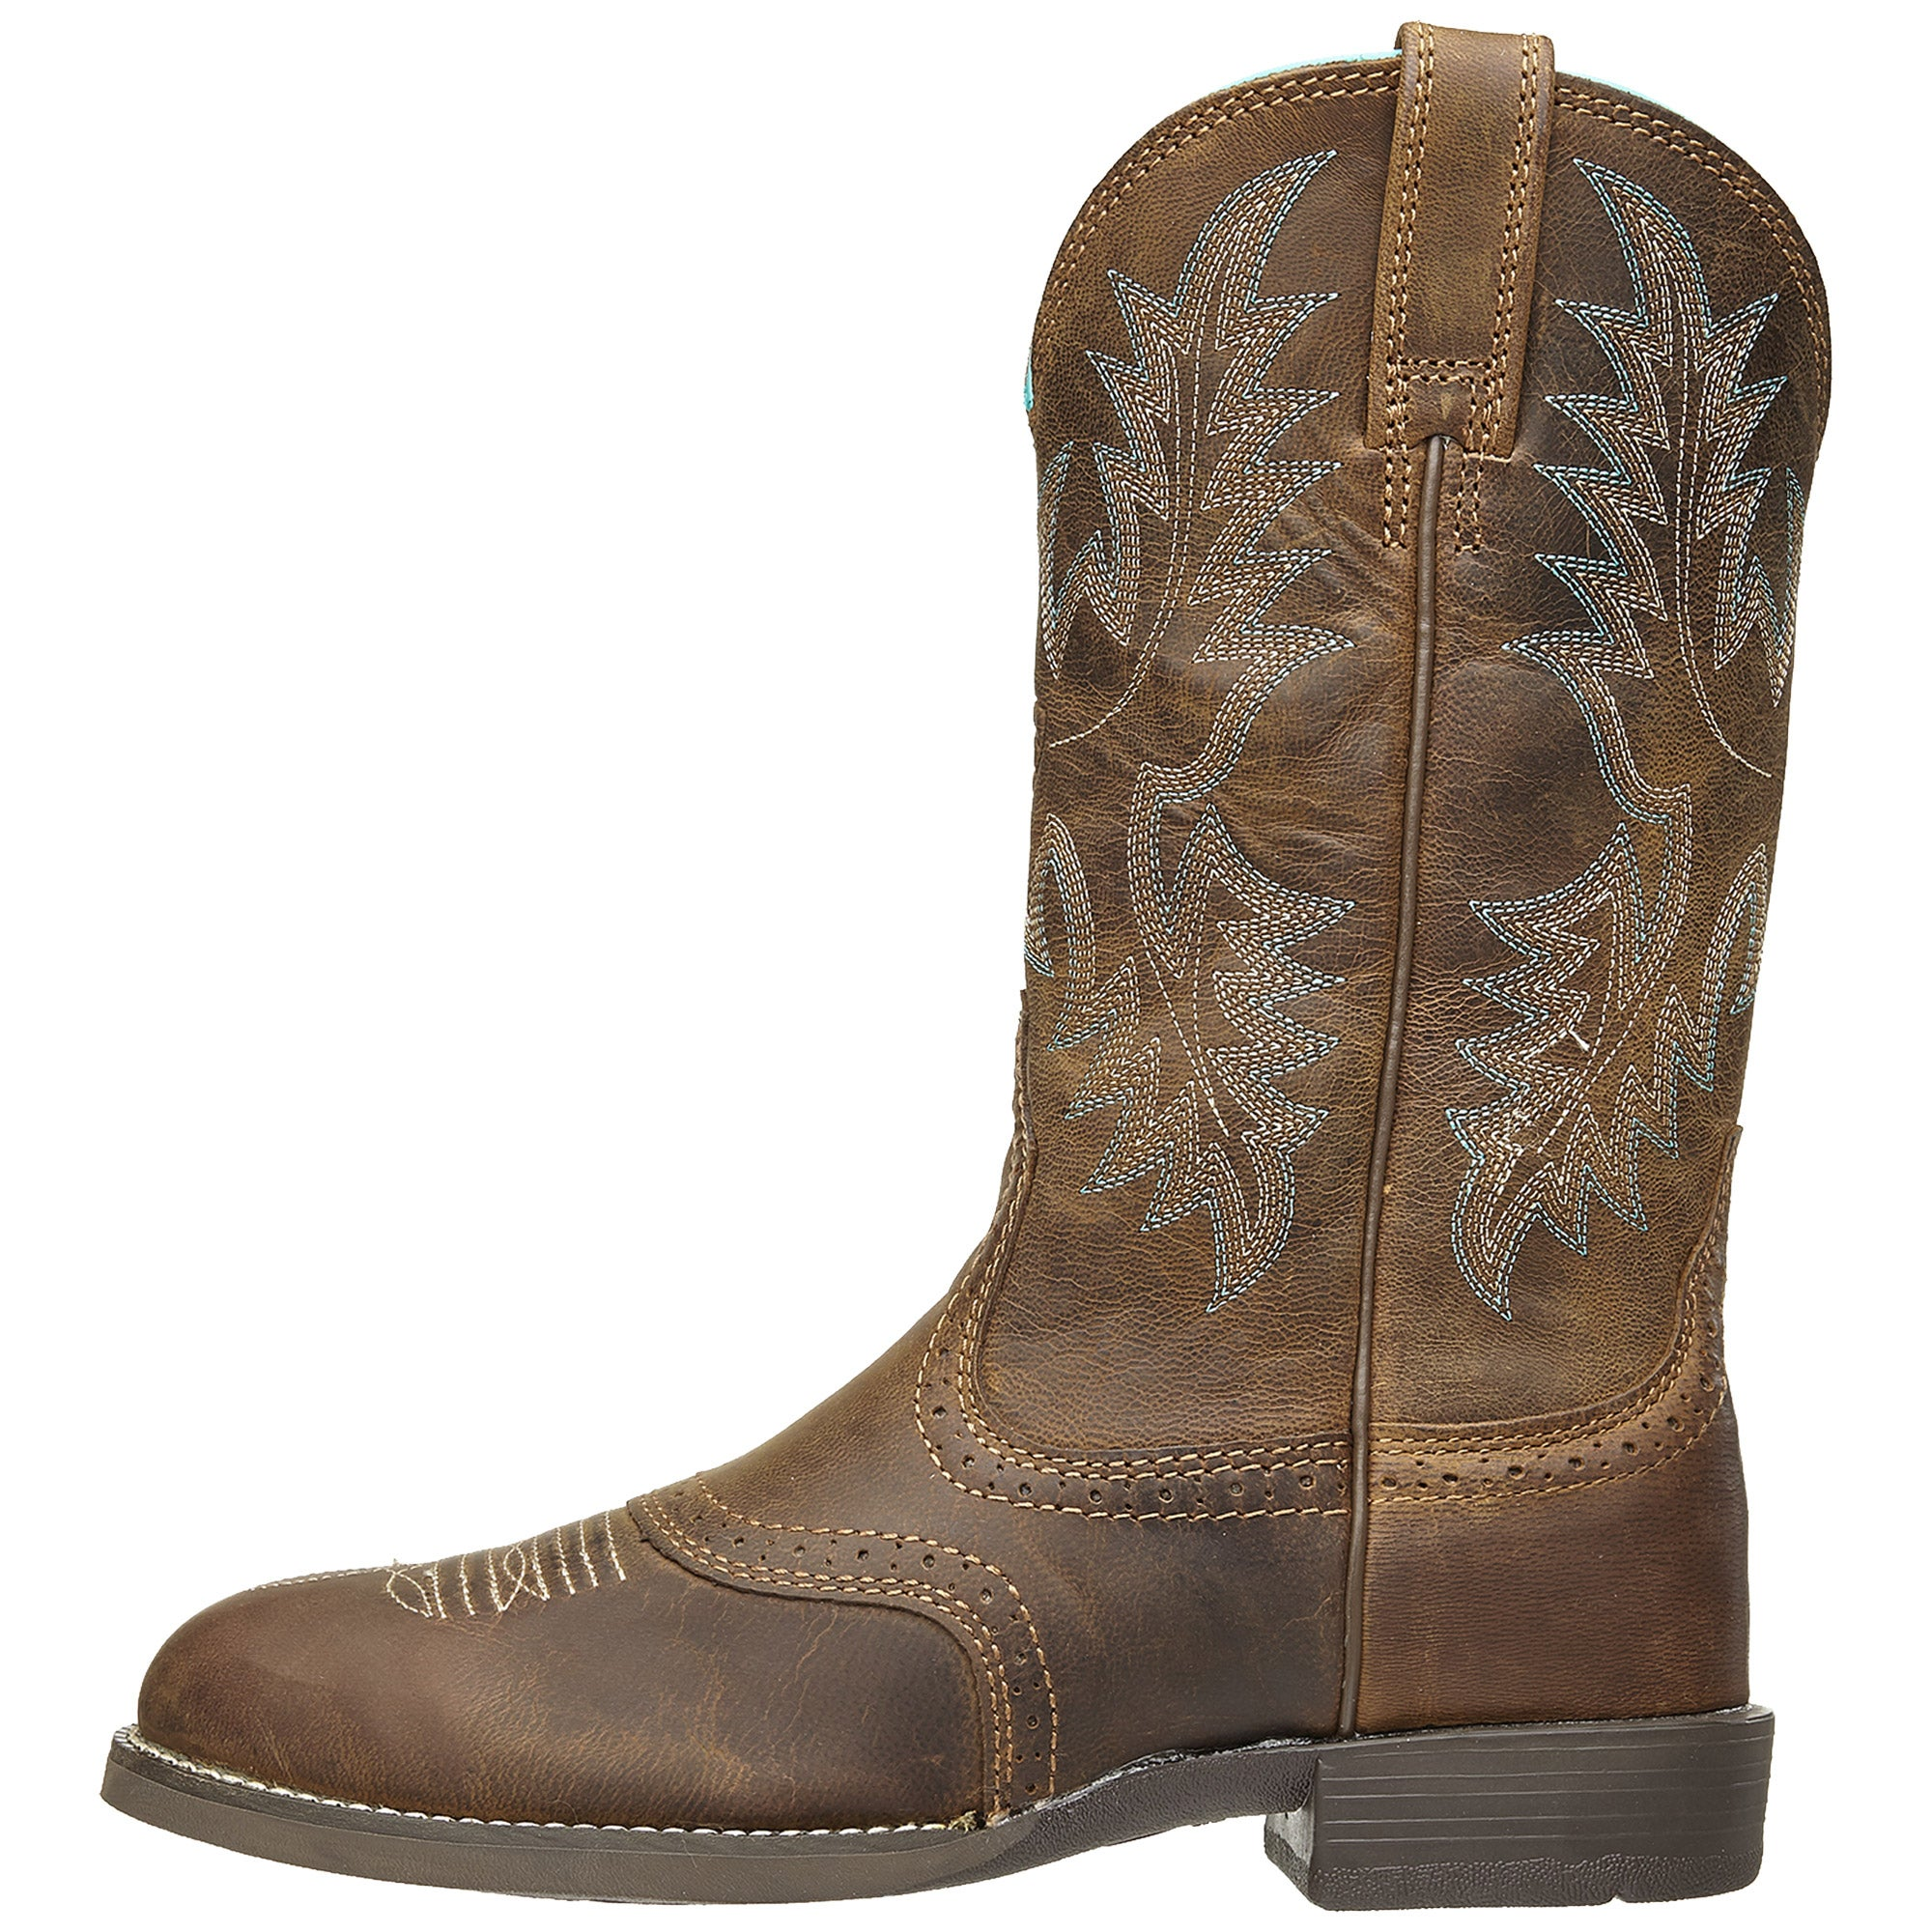 807e621f955 Ariat Women's Heritage Stockman Round Toe Cowboy Boots - Riding ...